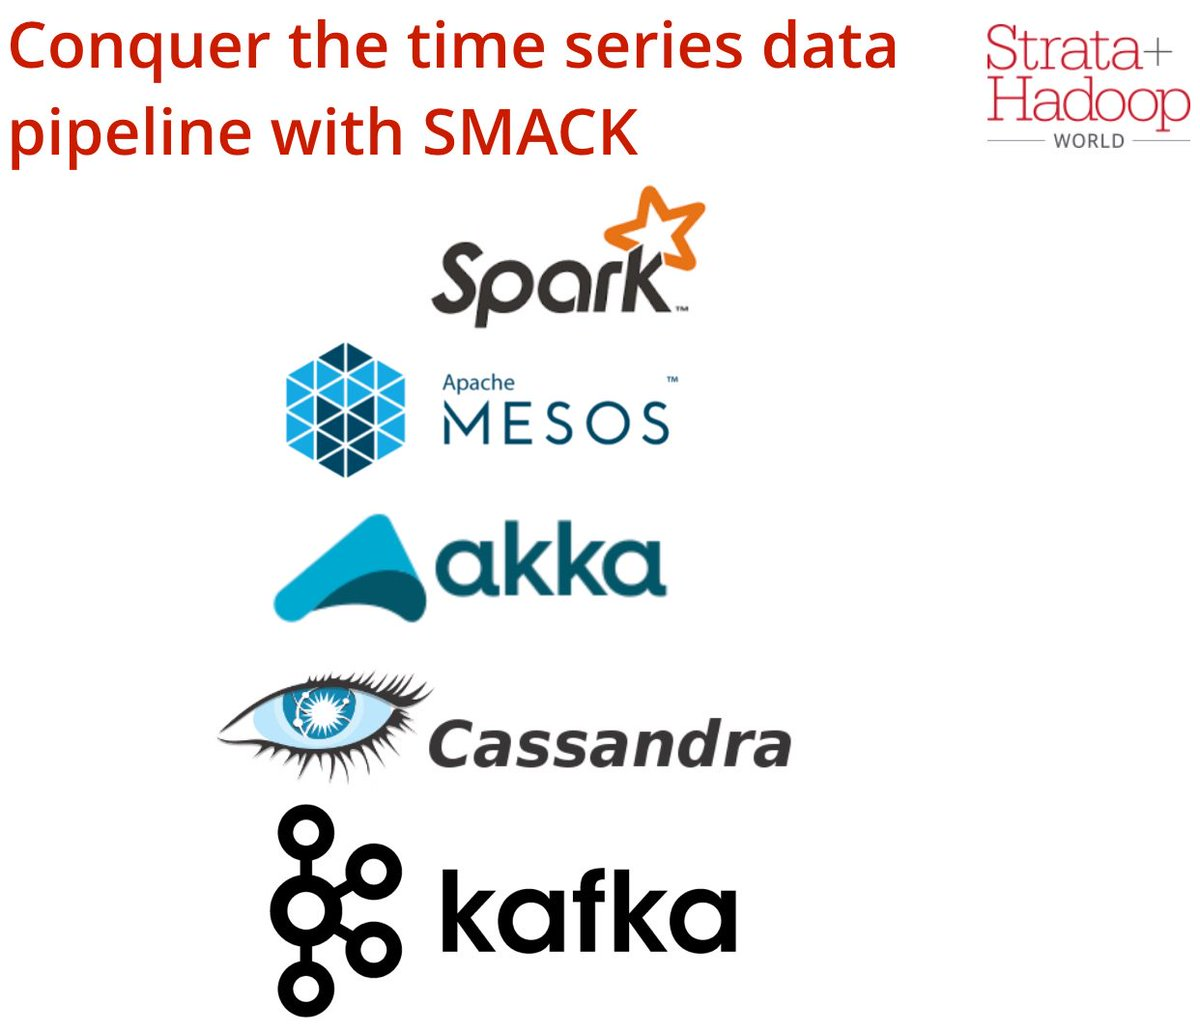 Conquer the time series data pipeline with smack: Big data conference: Strata + Hadoop World, September 26